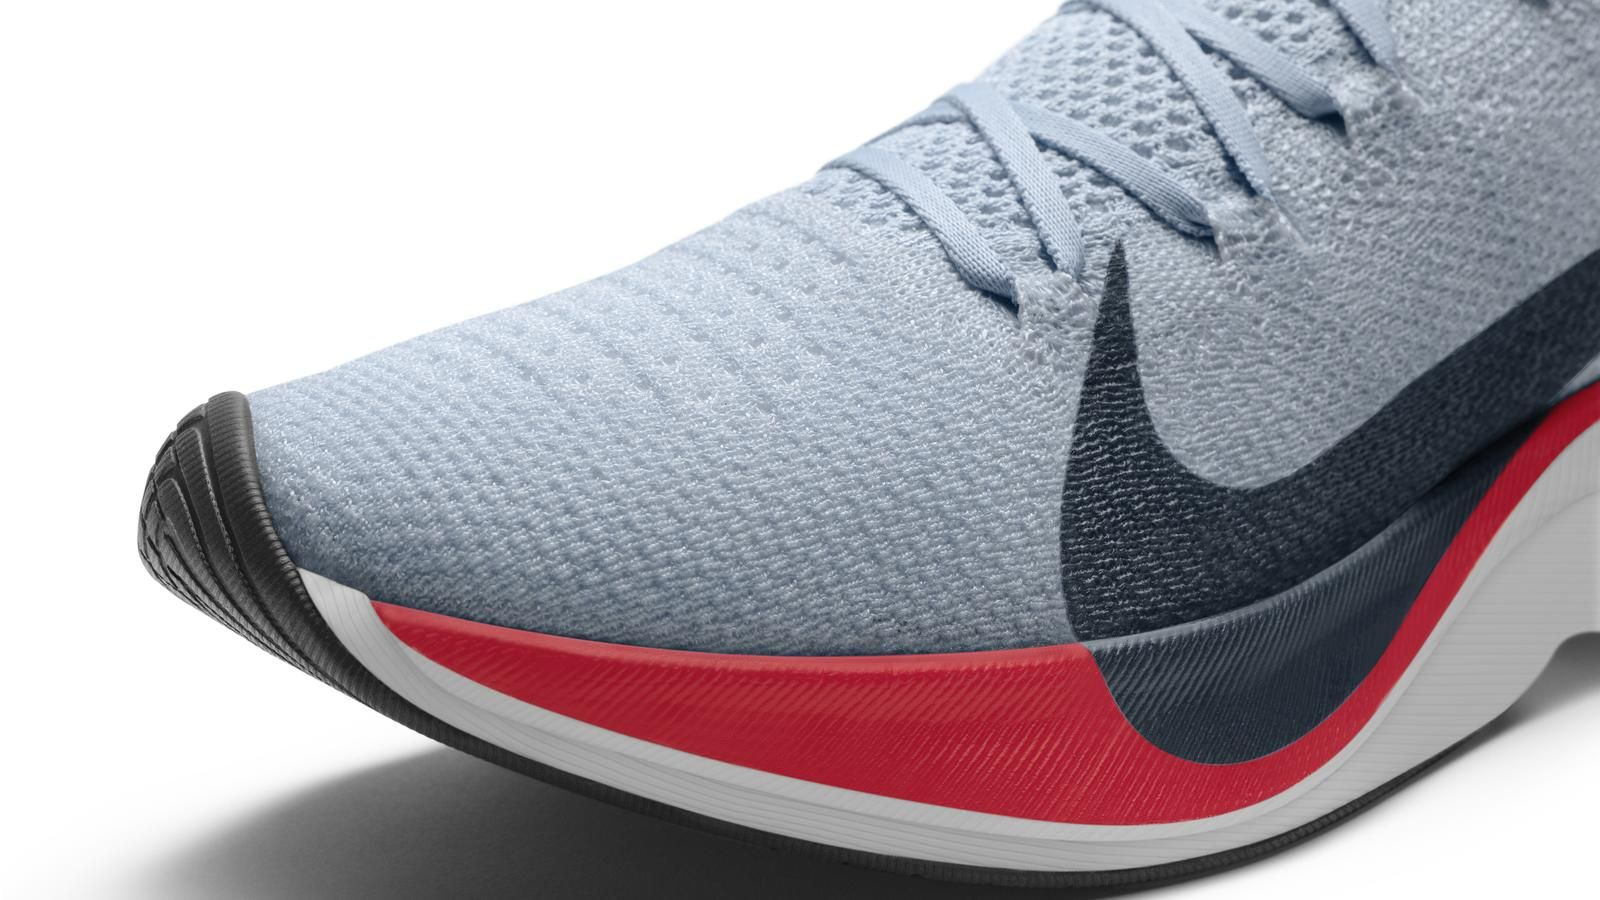 7d9e5c96b72da Nike News - Introducing the Nike Zoom Vaporfly Elite Featuring Nike ZoomX  Midsole